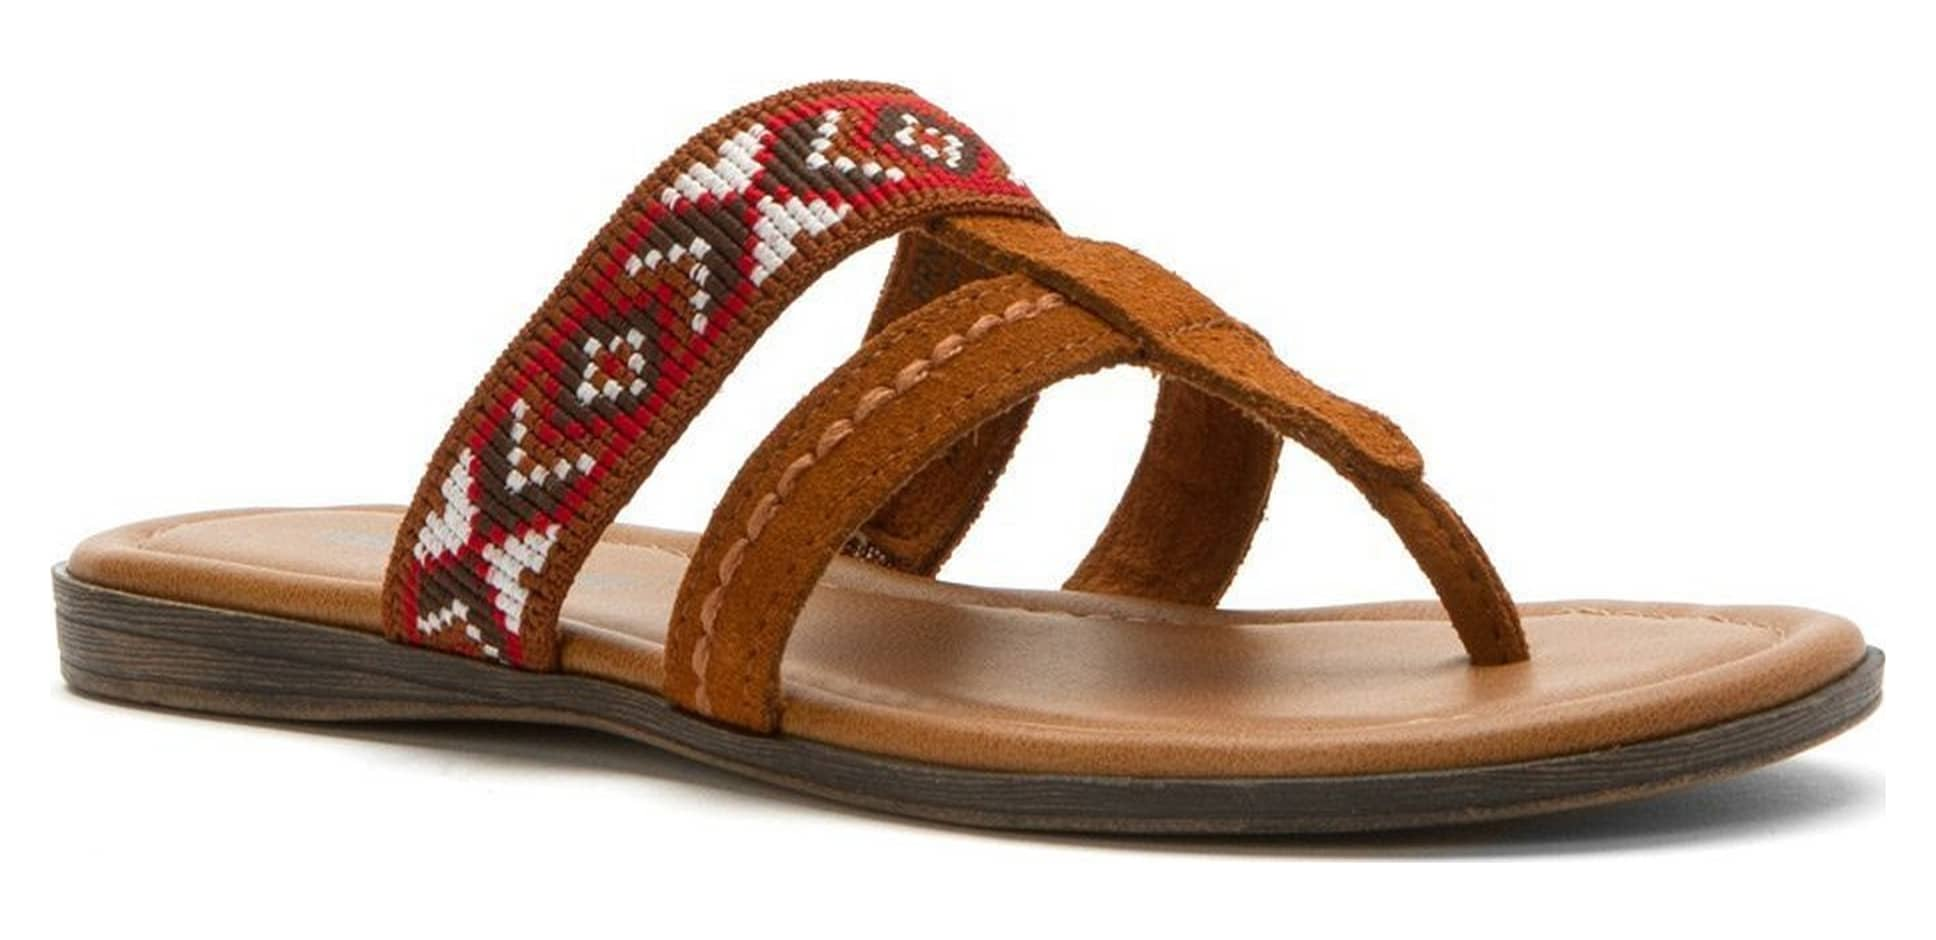 Travel Fashion Girl help! A reader asks: I would like your feedback on these travel sandals.I am currently trying them out in black and they are really comfy. I am 30 years old and having a hard time finding sandals that work for me for while traveling all over Italy.